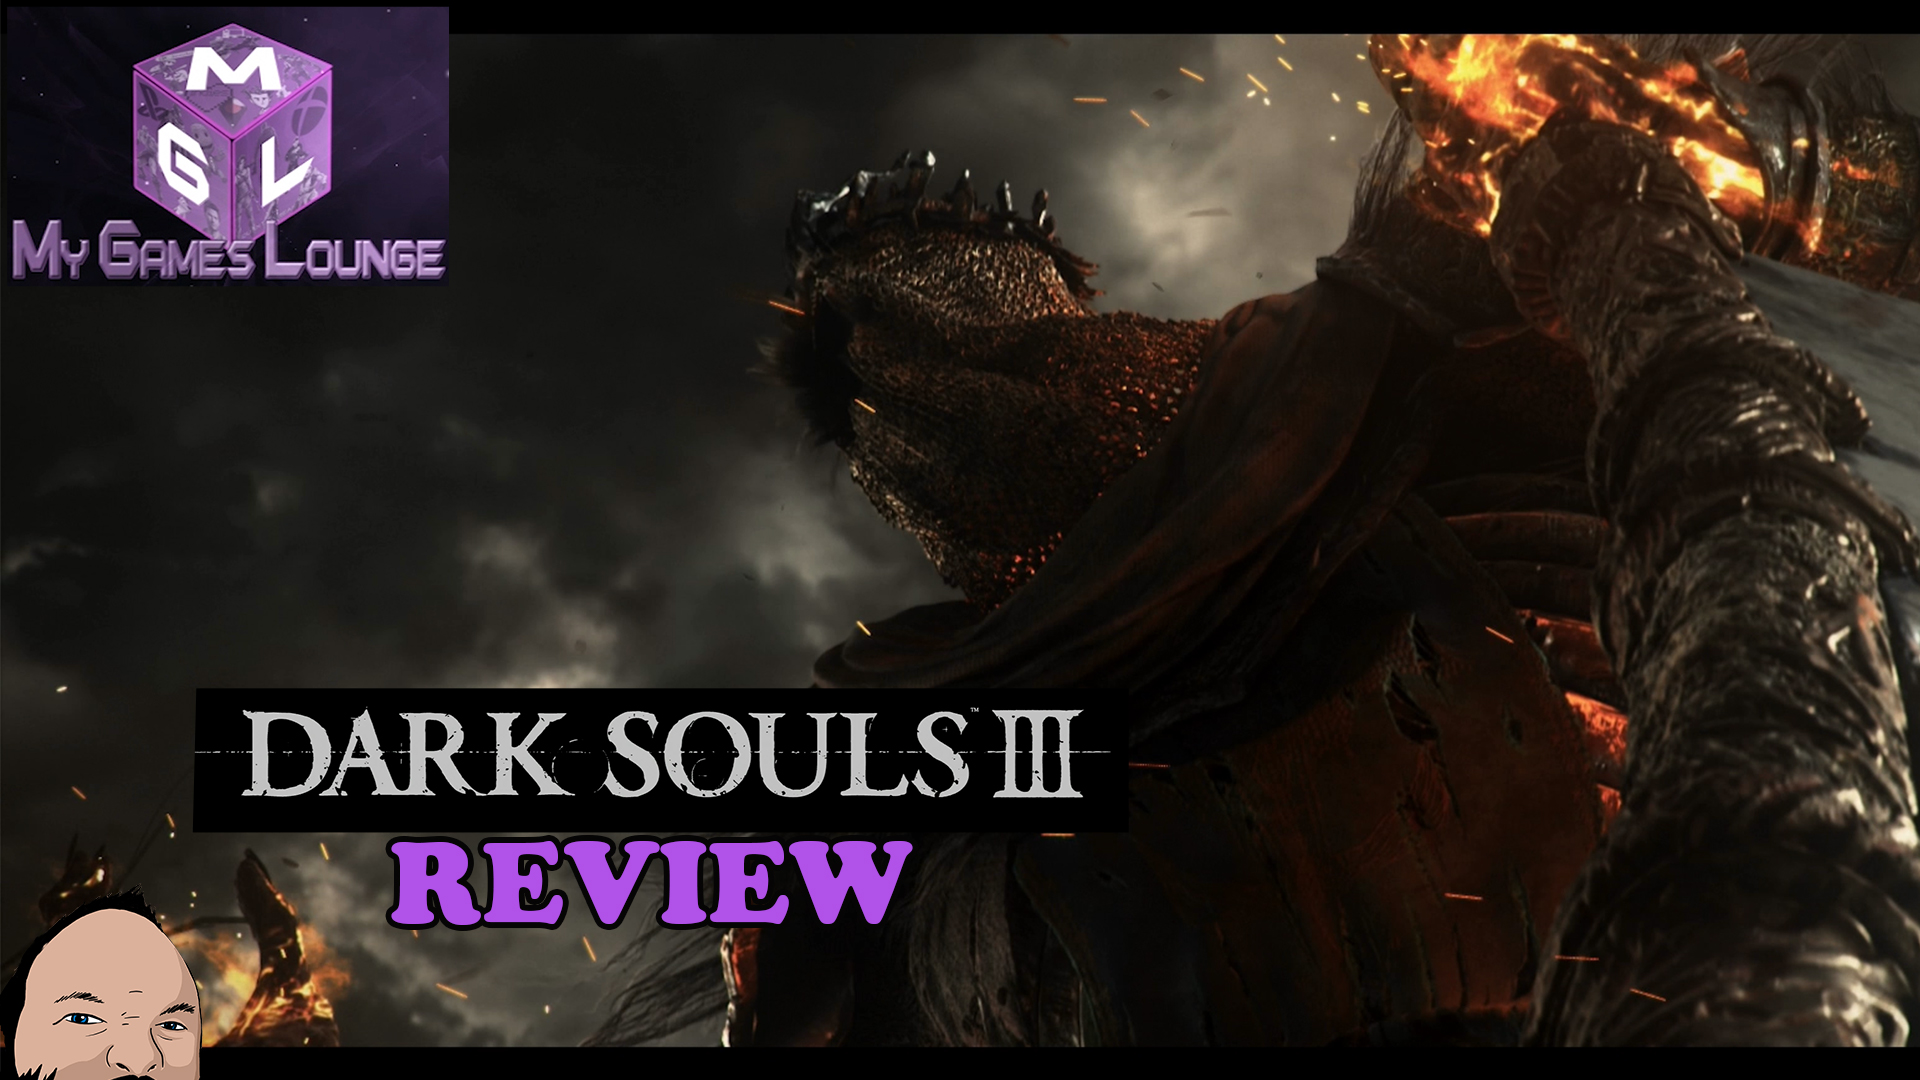 Dark Souls Ii Final Review The Trouble With Sequels: Dark Souls III Review